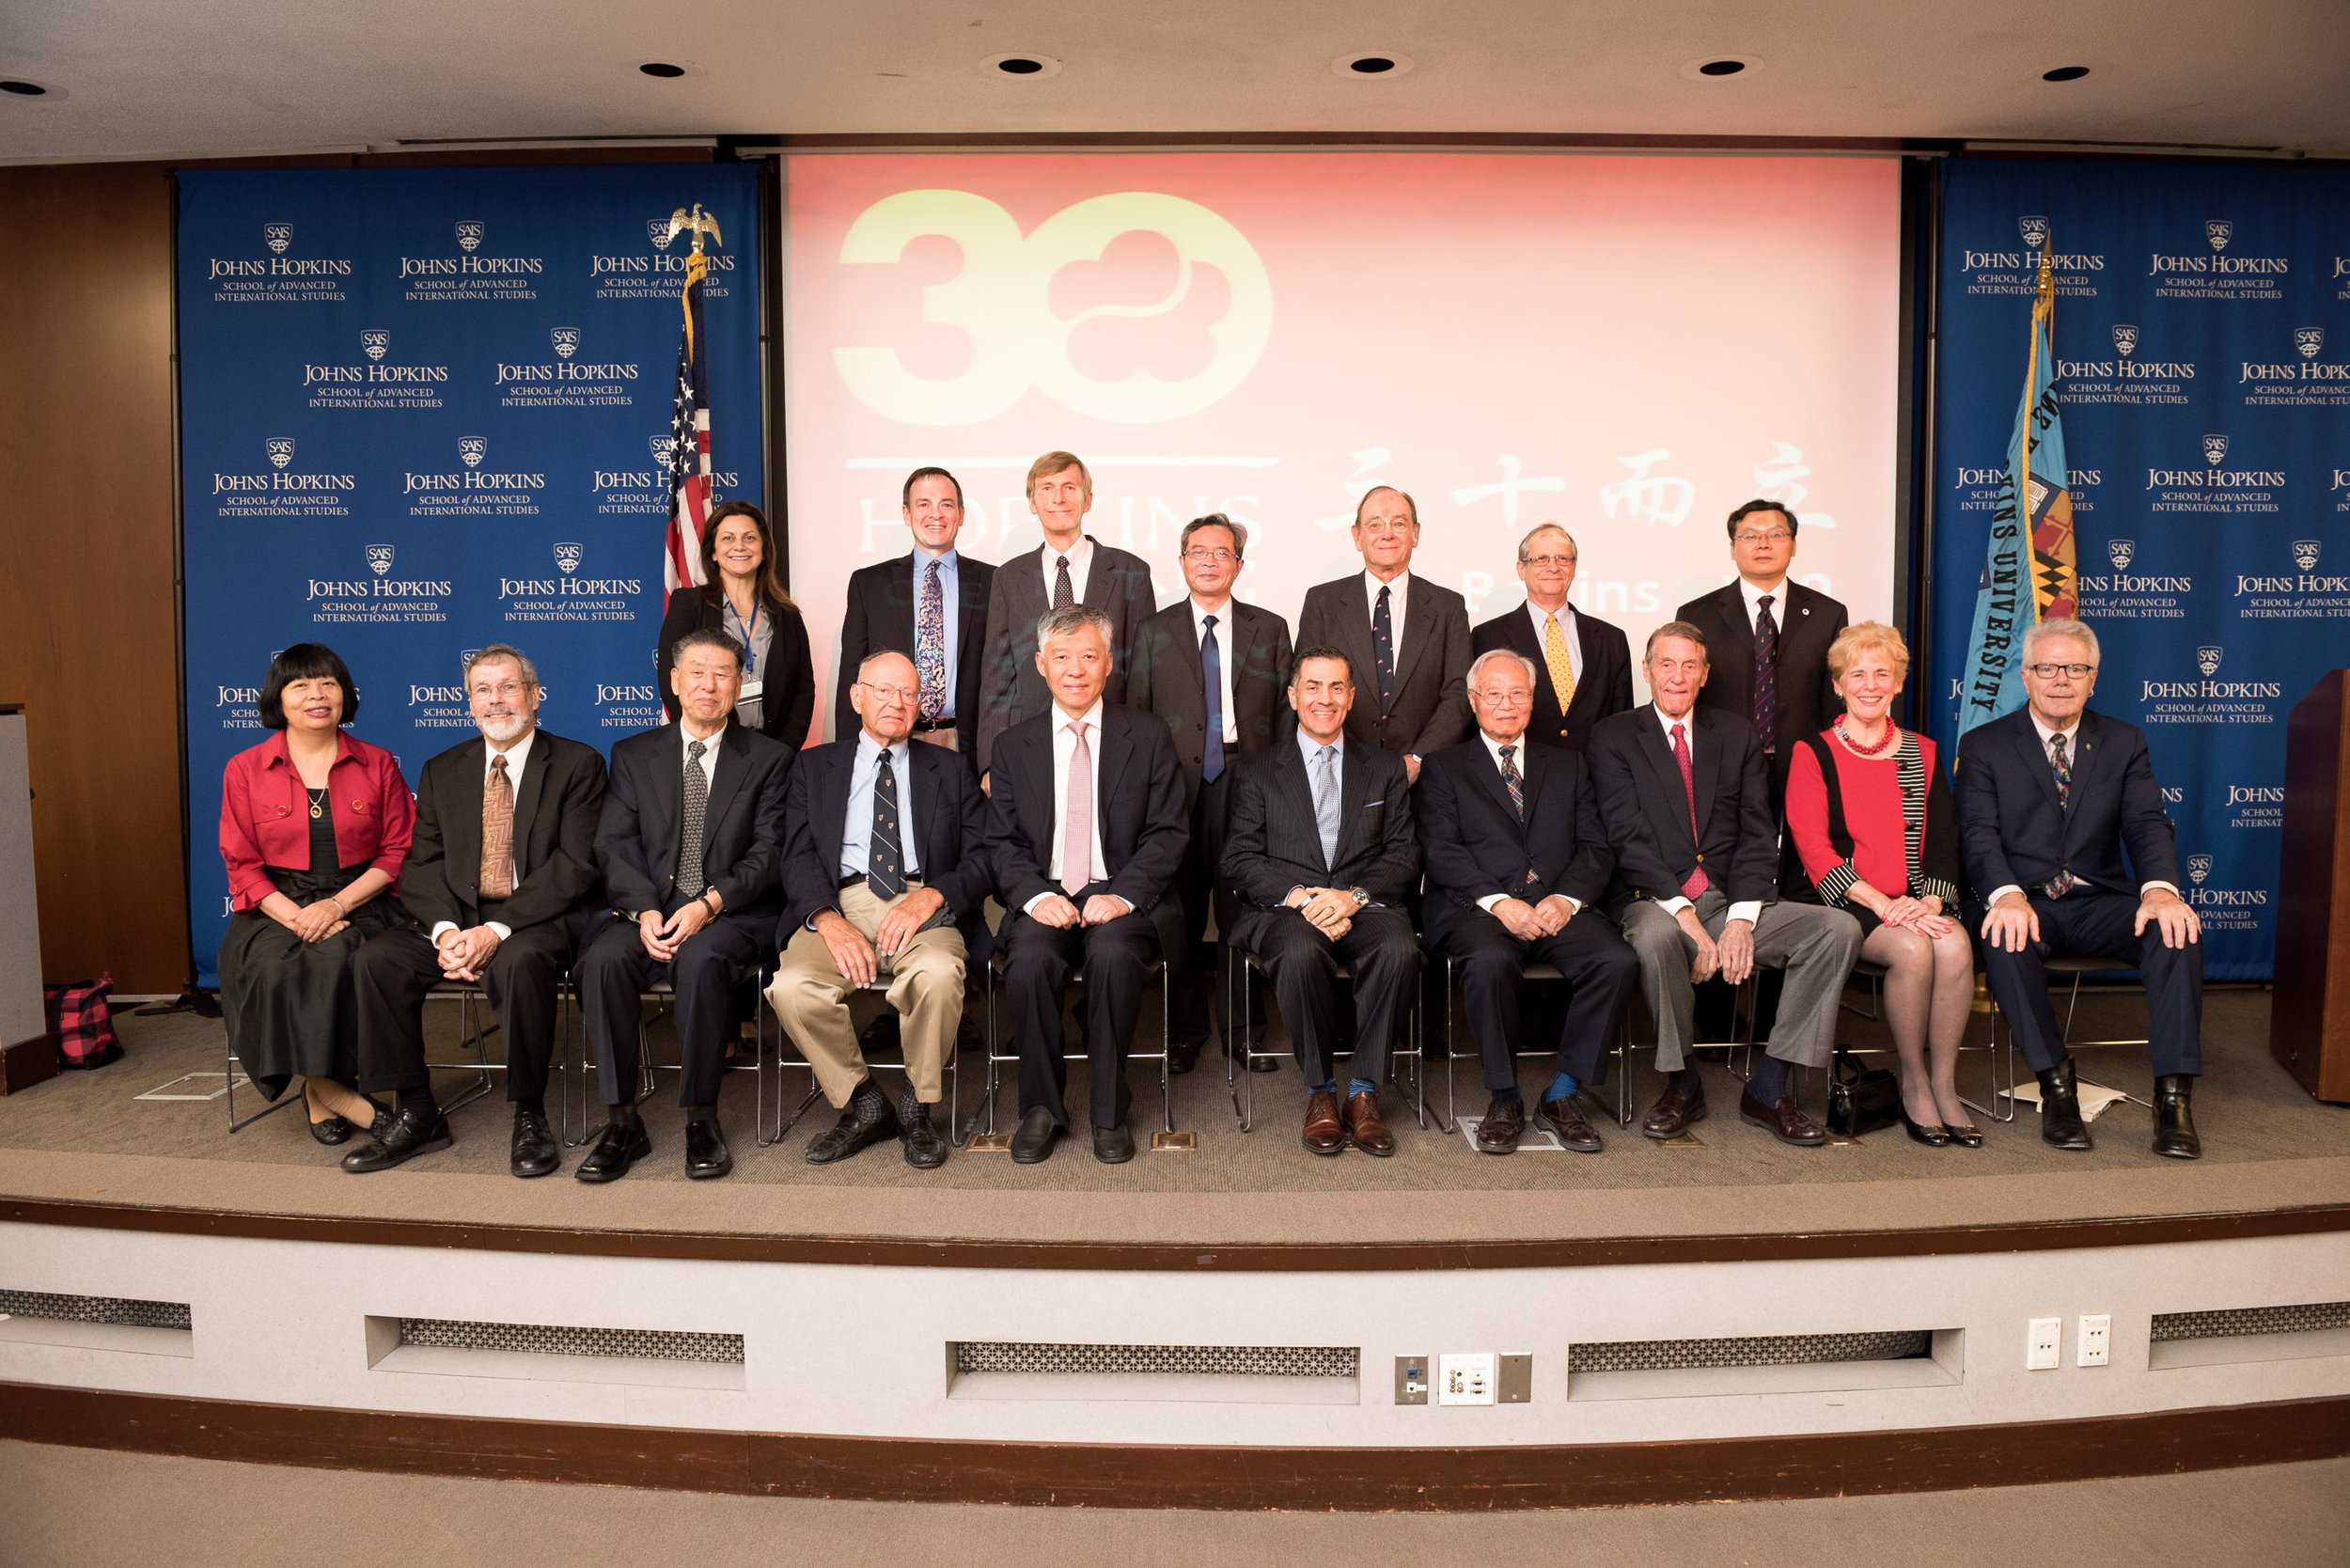 Reception speakers and honored guests pictured above. Former HNC co-directors in attendance included:  Wang Zhigang, Chinese Co-Director, 1986-1994 Chen Yongxiang, Chinese Co-Director, 1994-2003 Huang Chengfeng, Chinese Co-Director, 2003-2013 He Chengzhou, Chinese Co-Director, 2013-present  Leon Slawecki, American Co-Director, 1986-1988 Richard Gaulton, American Co-Director, 1988-1990 Anthony Kane, American Co-Director, 1991-1993 William Rope, American Co-Director, 1995-1996 Robert Daly, American Co-Director, 2001-2007 Carla Freeman, Interim American Co-Director, 2010-2011 Cornelius Kubler, American C0-Director, 2014-2016